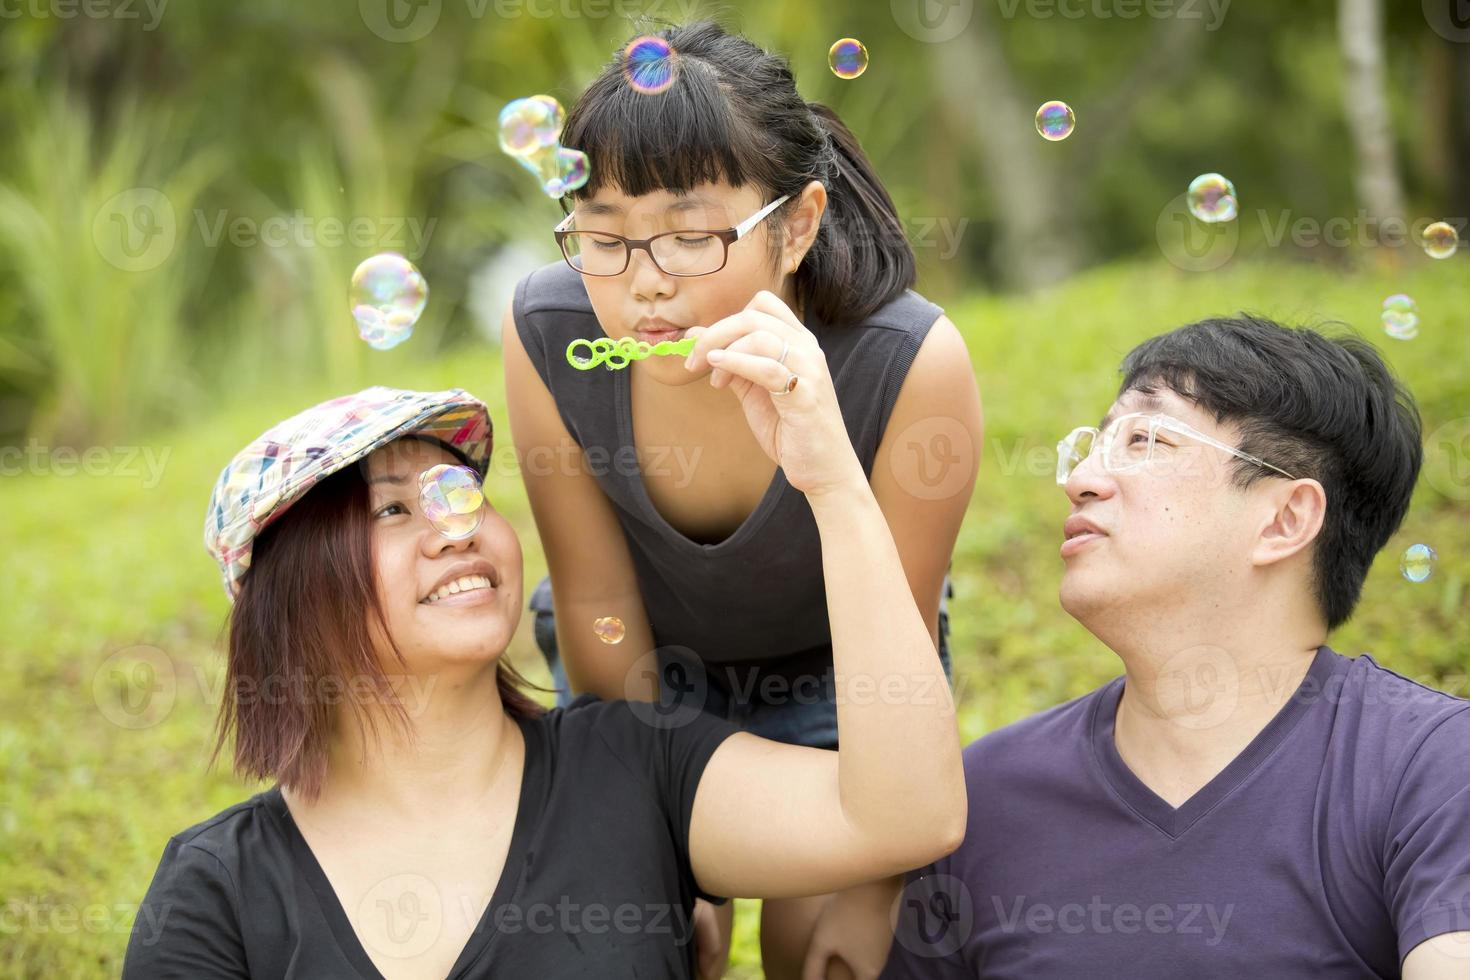 Young Asian girl playing blowing bubbles in park bonding photo